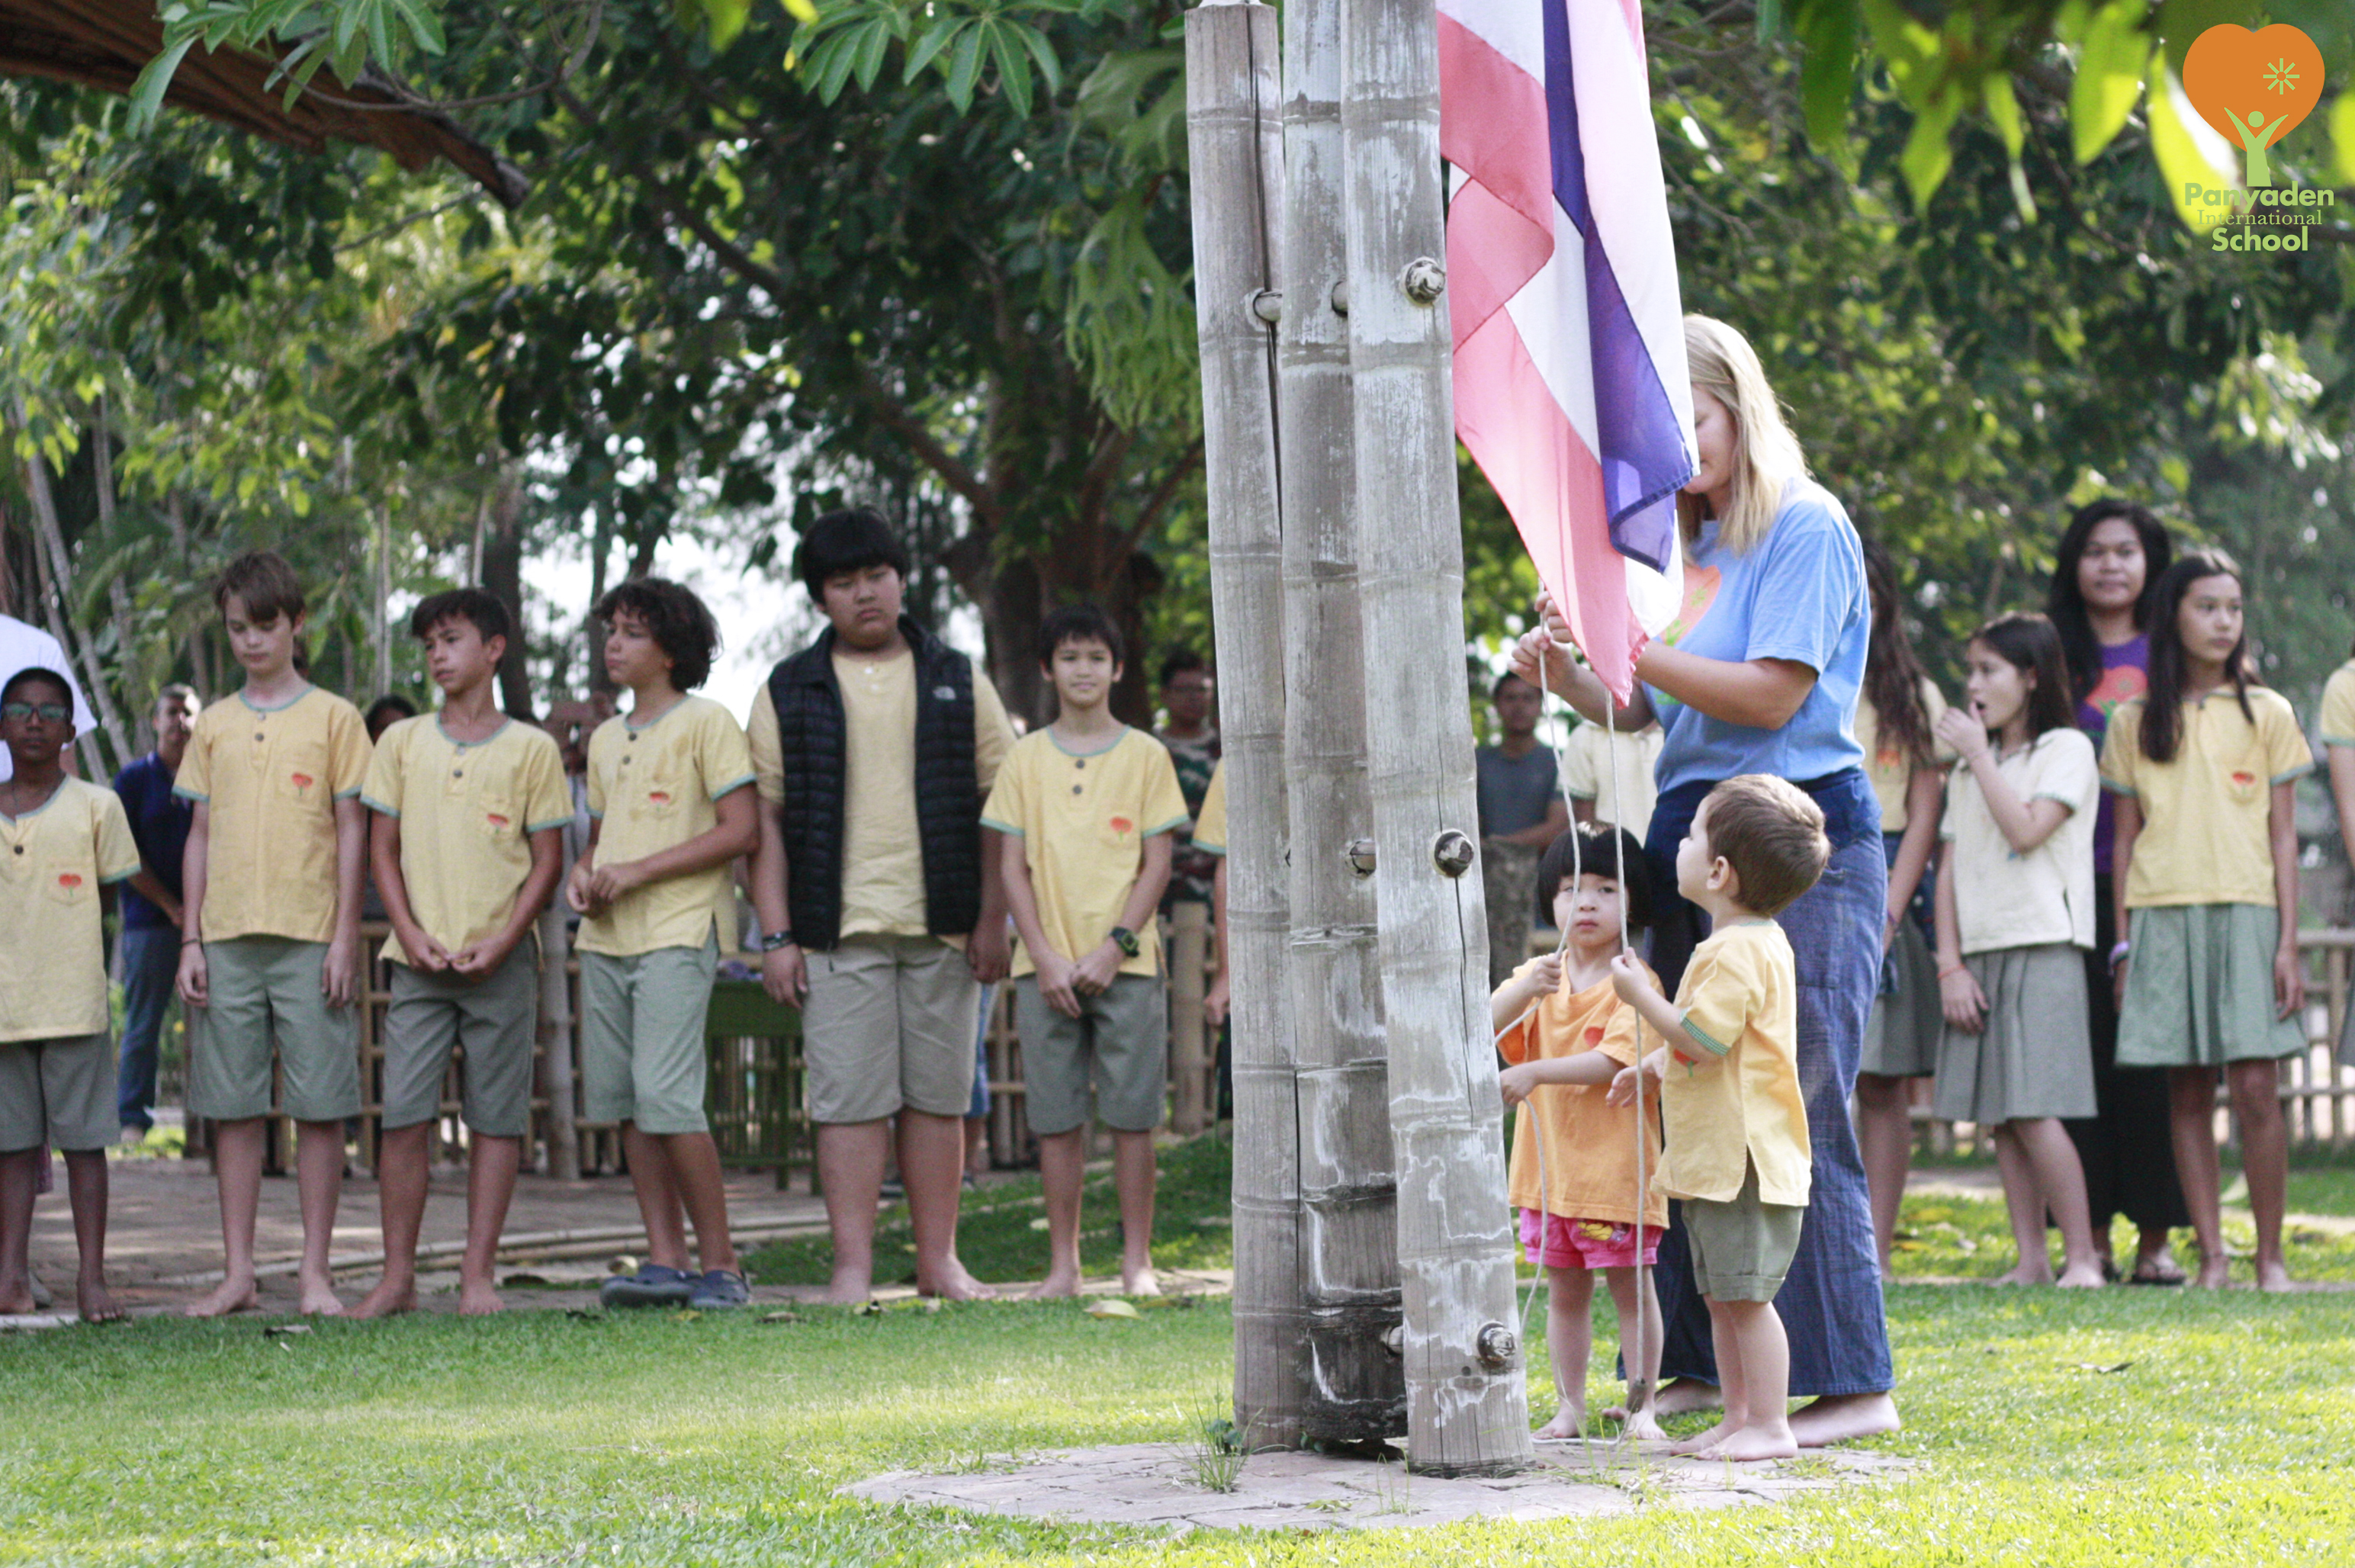 Flag raising at Panyaden International School on the first day after the half-term break